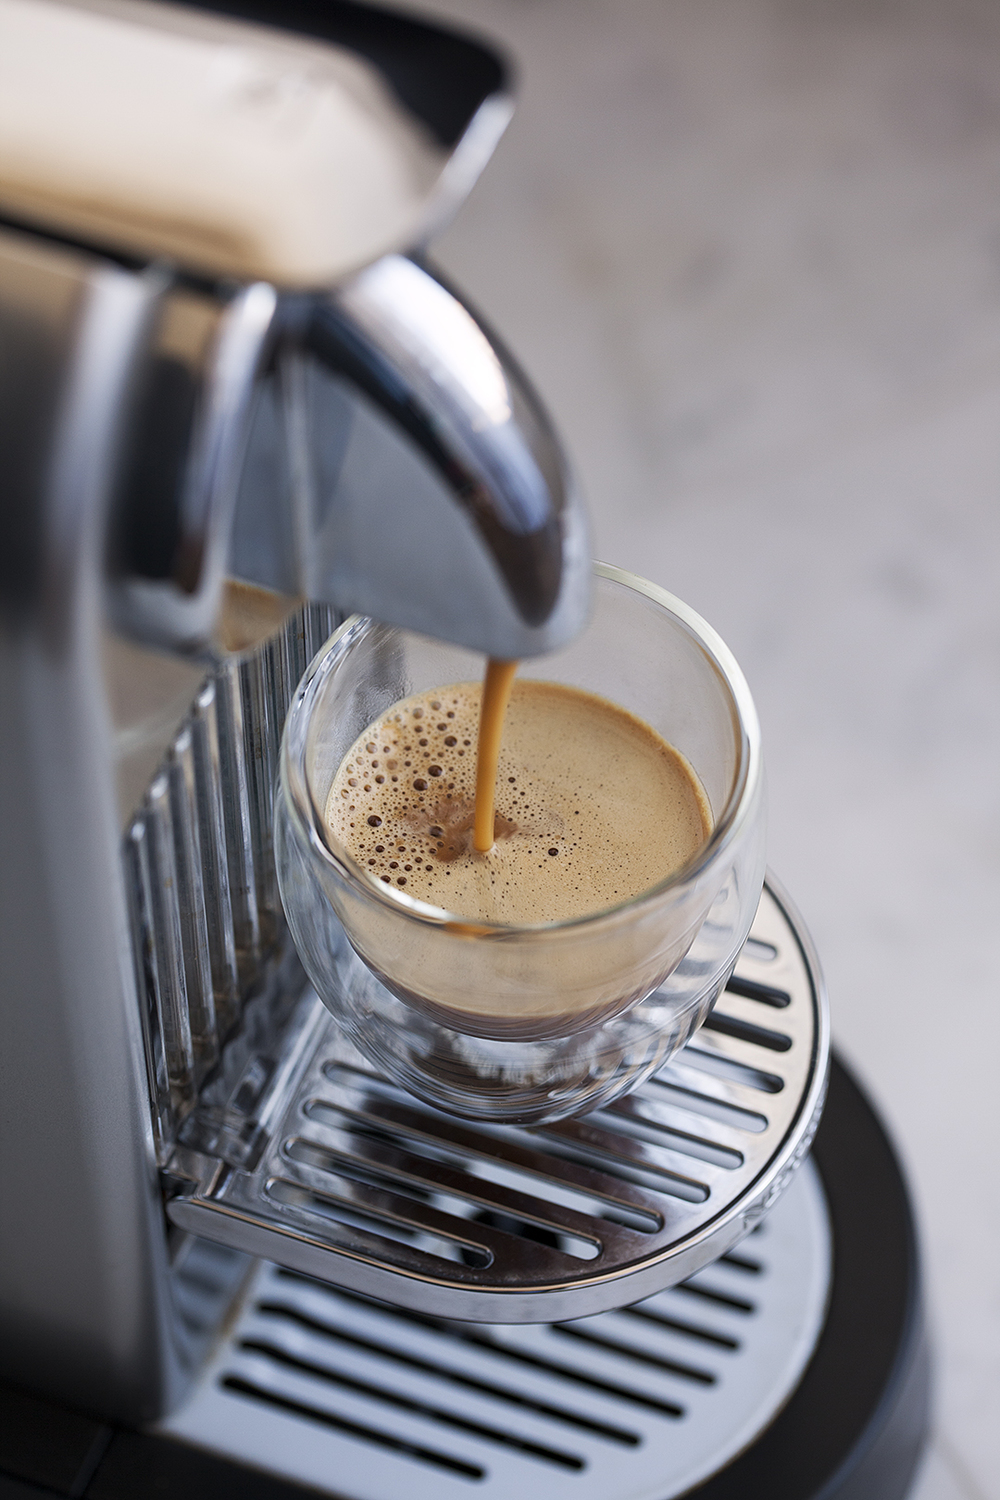 Burggraaf_Charity-Seattle_Food_Photographer-Nespresso-espresso.jpg